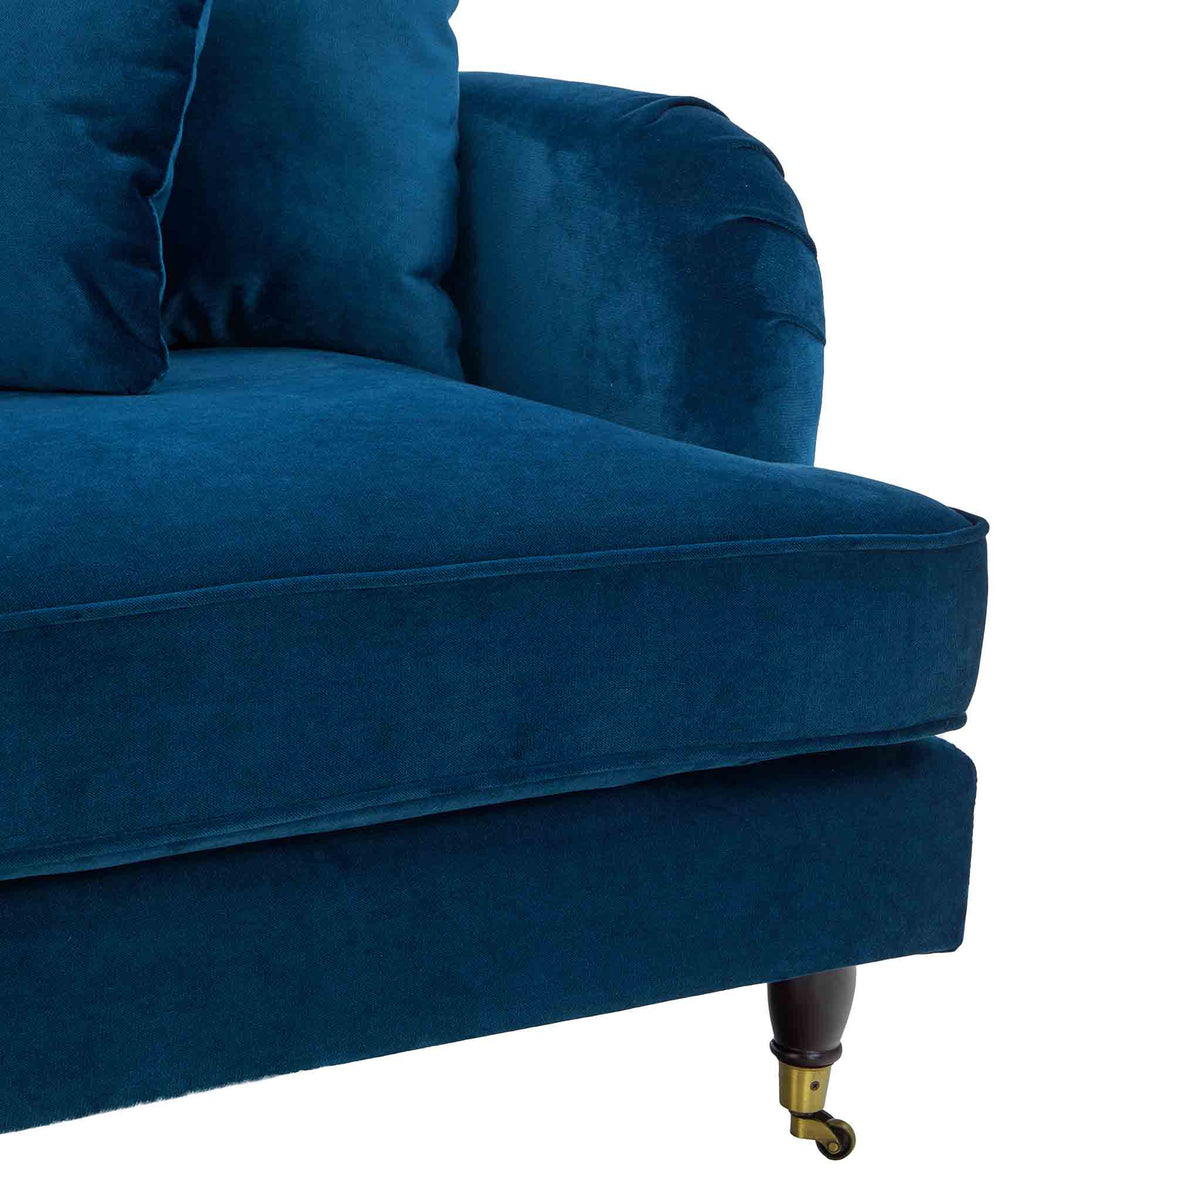 close up of seat cushion on the Piper Peacock 2 Seater Sofa from Roseland Furniture